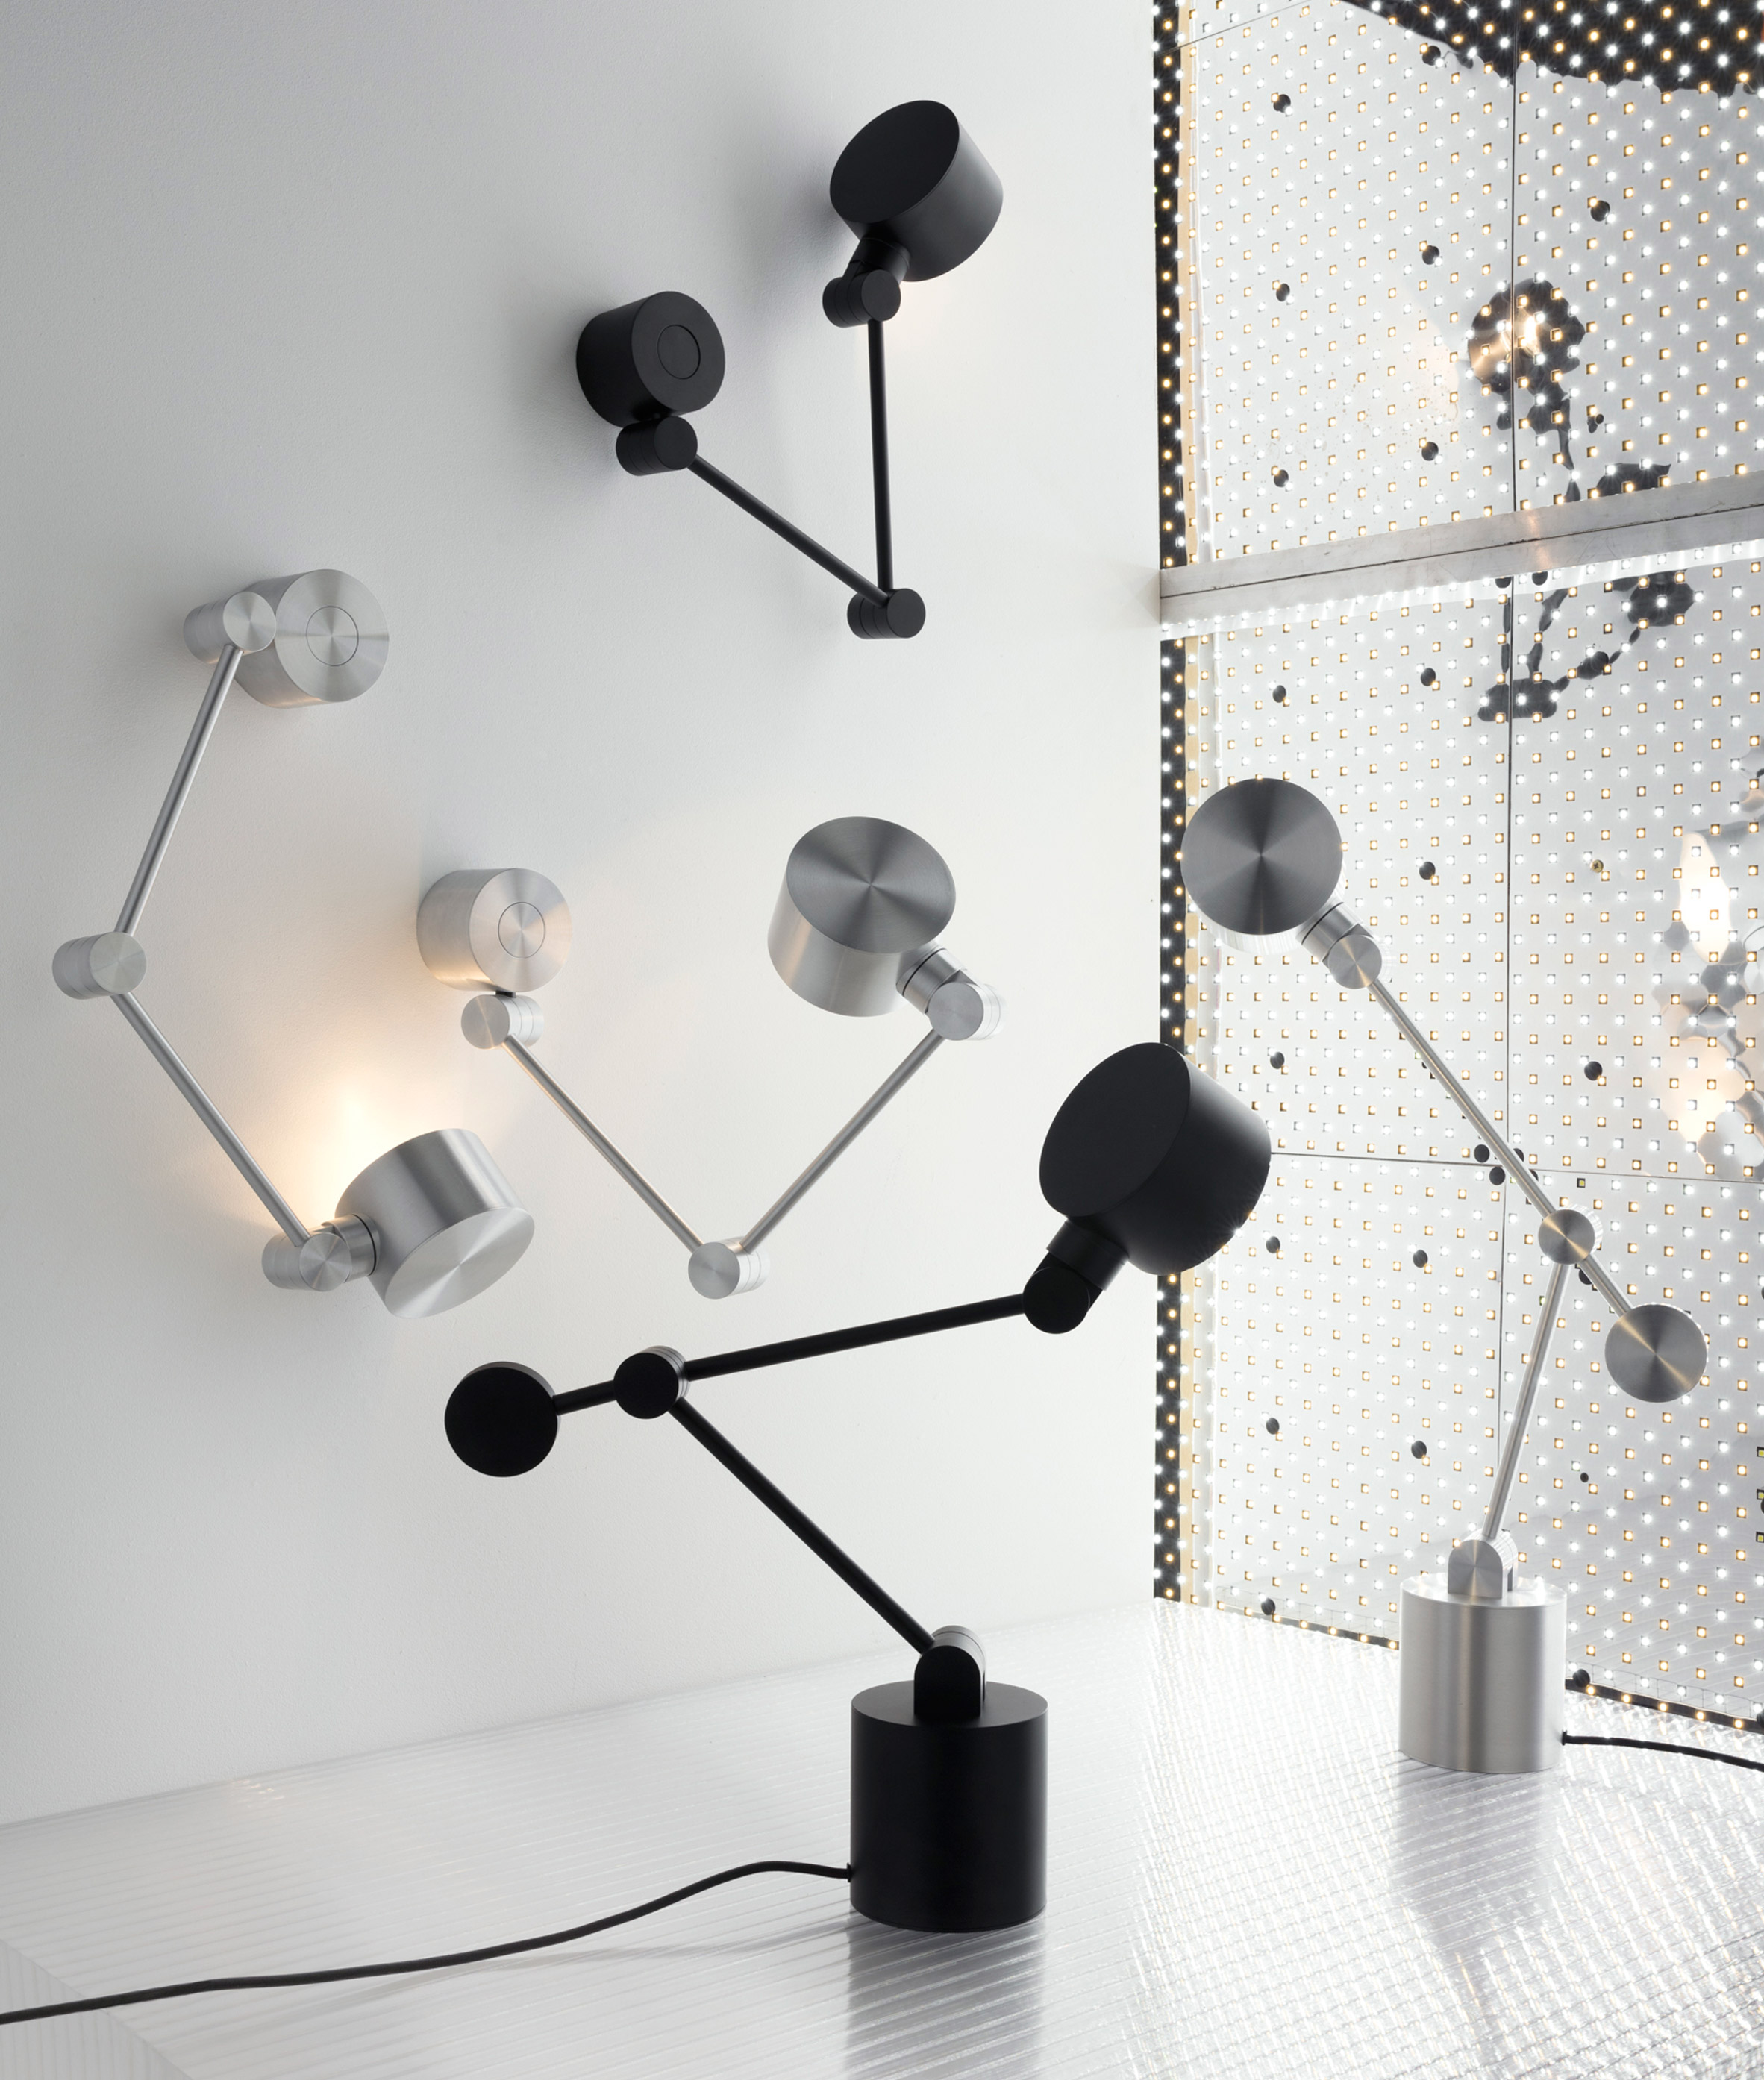 WHAT IF YOUR OFFICE WAS DECORATED BY TOM DIXON'S FURNITURE  Tom Dixon's furniture WHAT IF YOUR OFFICE WAS DECORATED BY TOM DIXON'S FURNITURE? WHAT IF YOUR OFFICE WAS DECORATED BY TOM DIXON   S FURNITURE 4